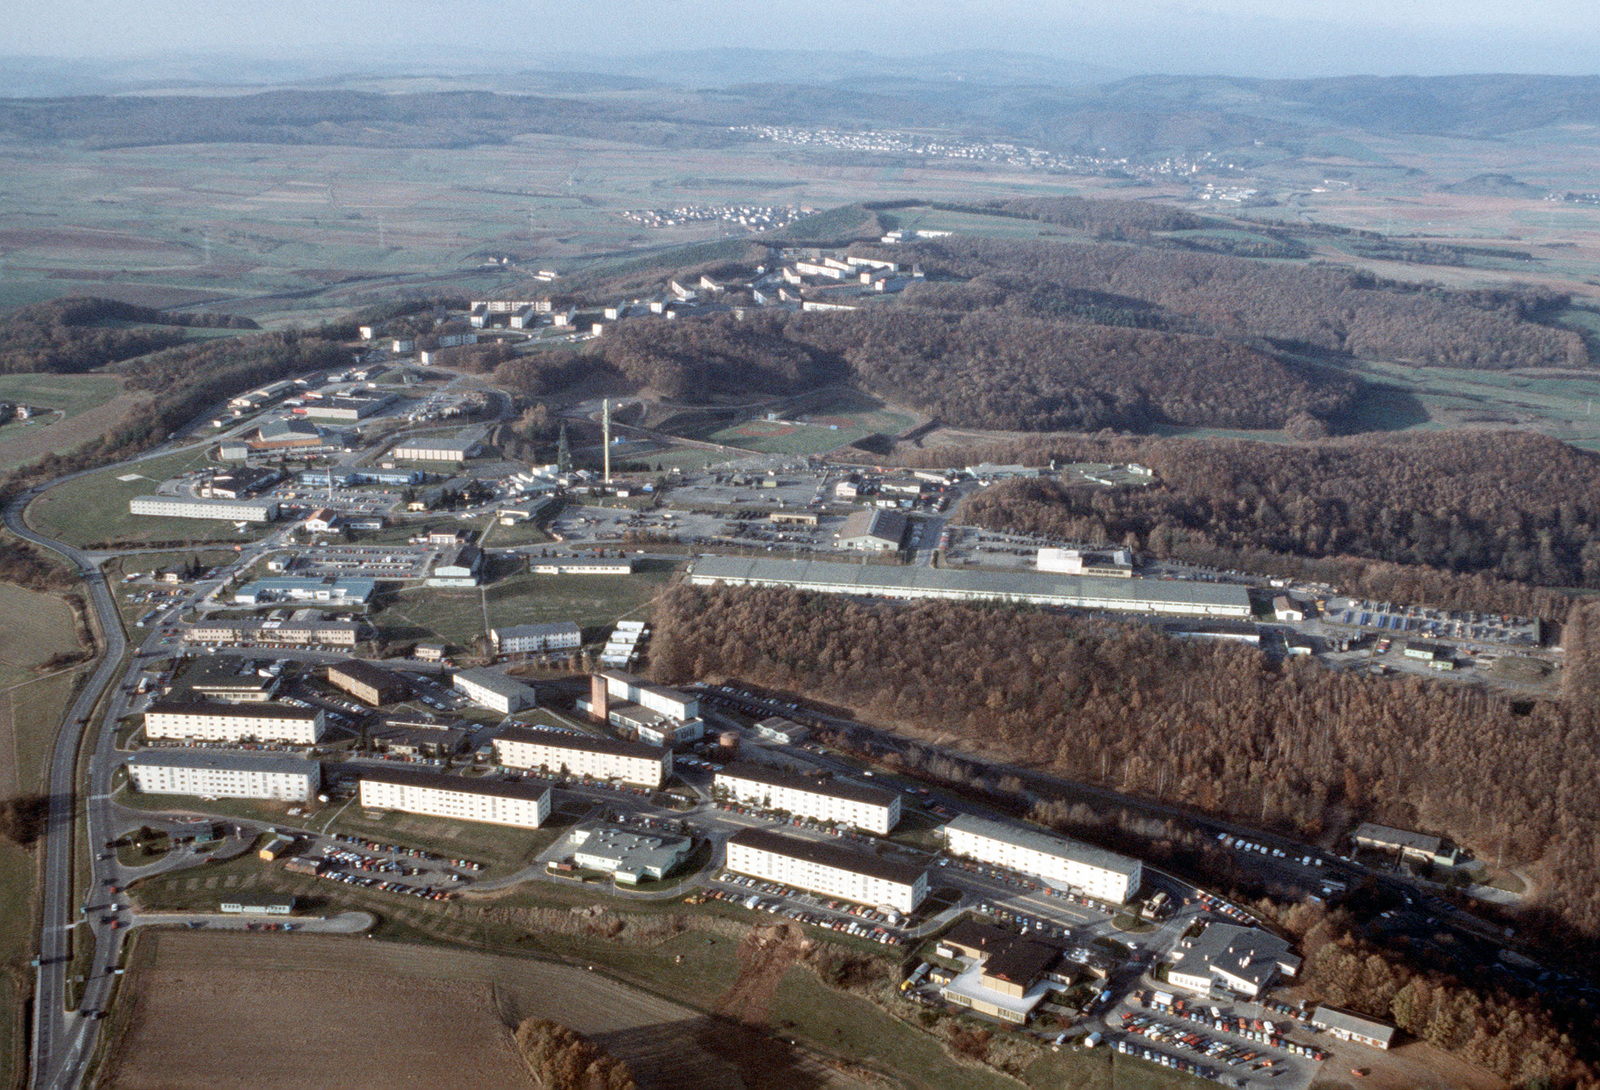 An aerial view of Sembach Air Base. The new communications tower is visible near the center of the photograph